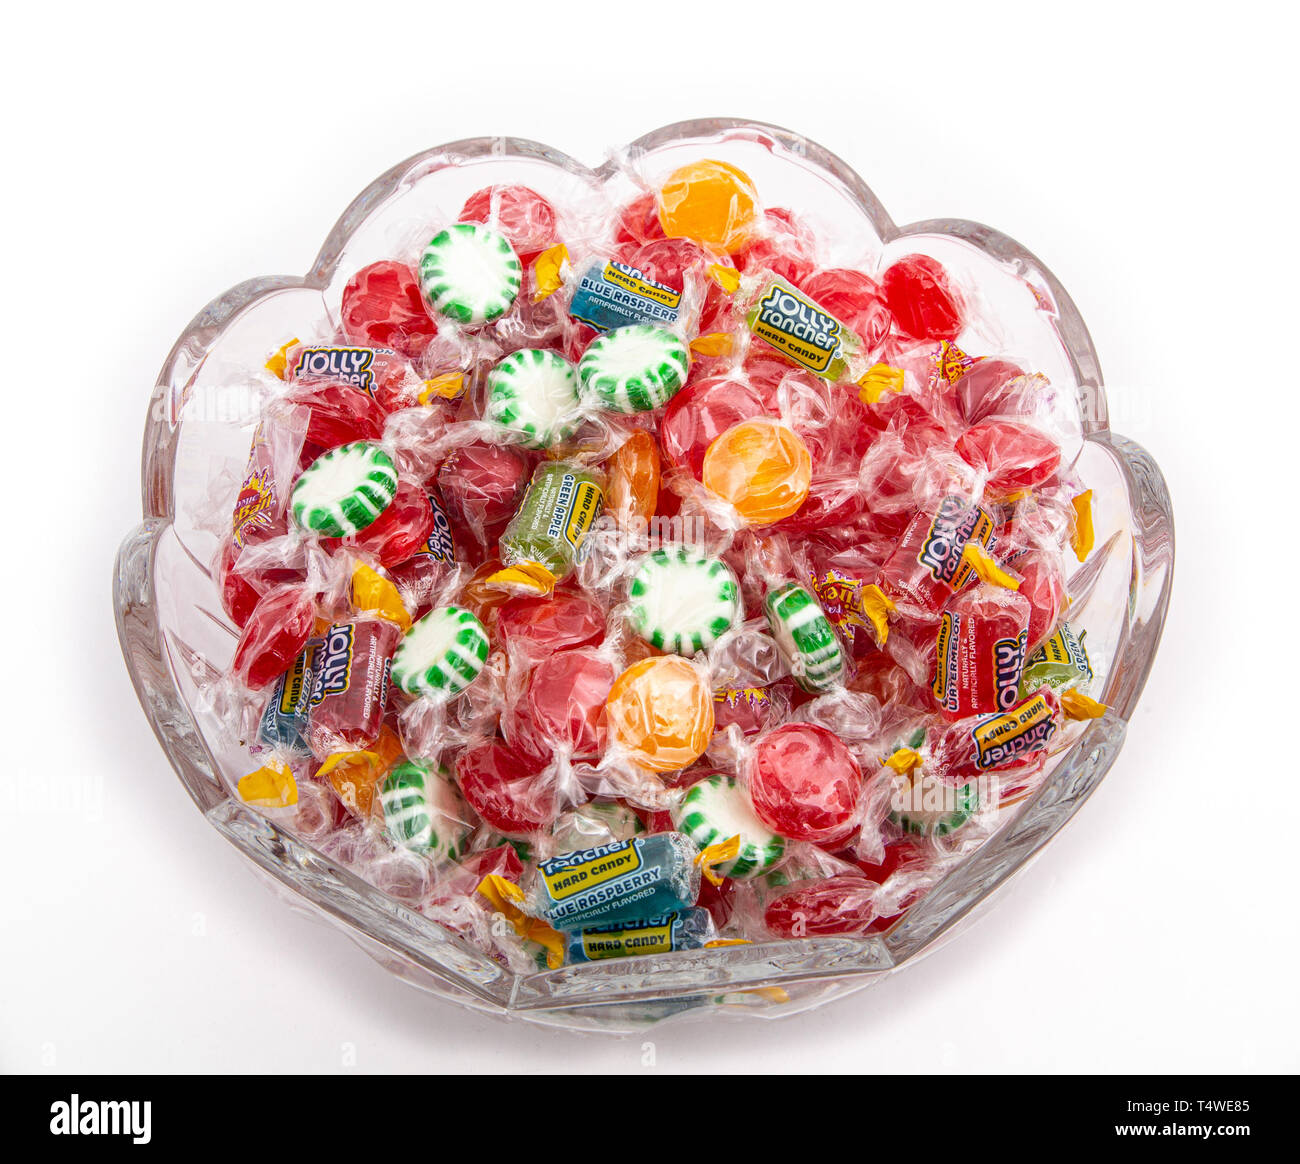 A cut glass bowl with individually wrapped hard candies - Stock Image